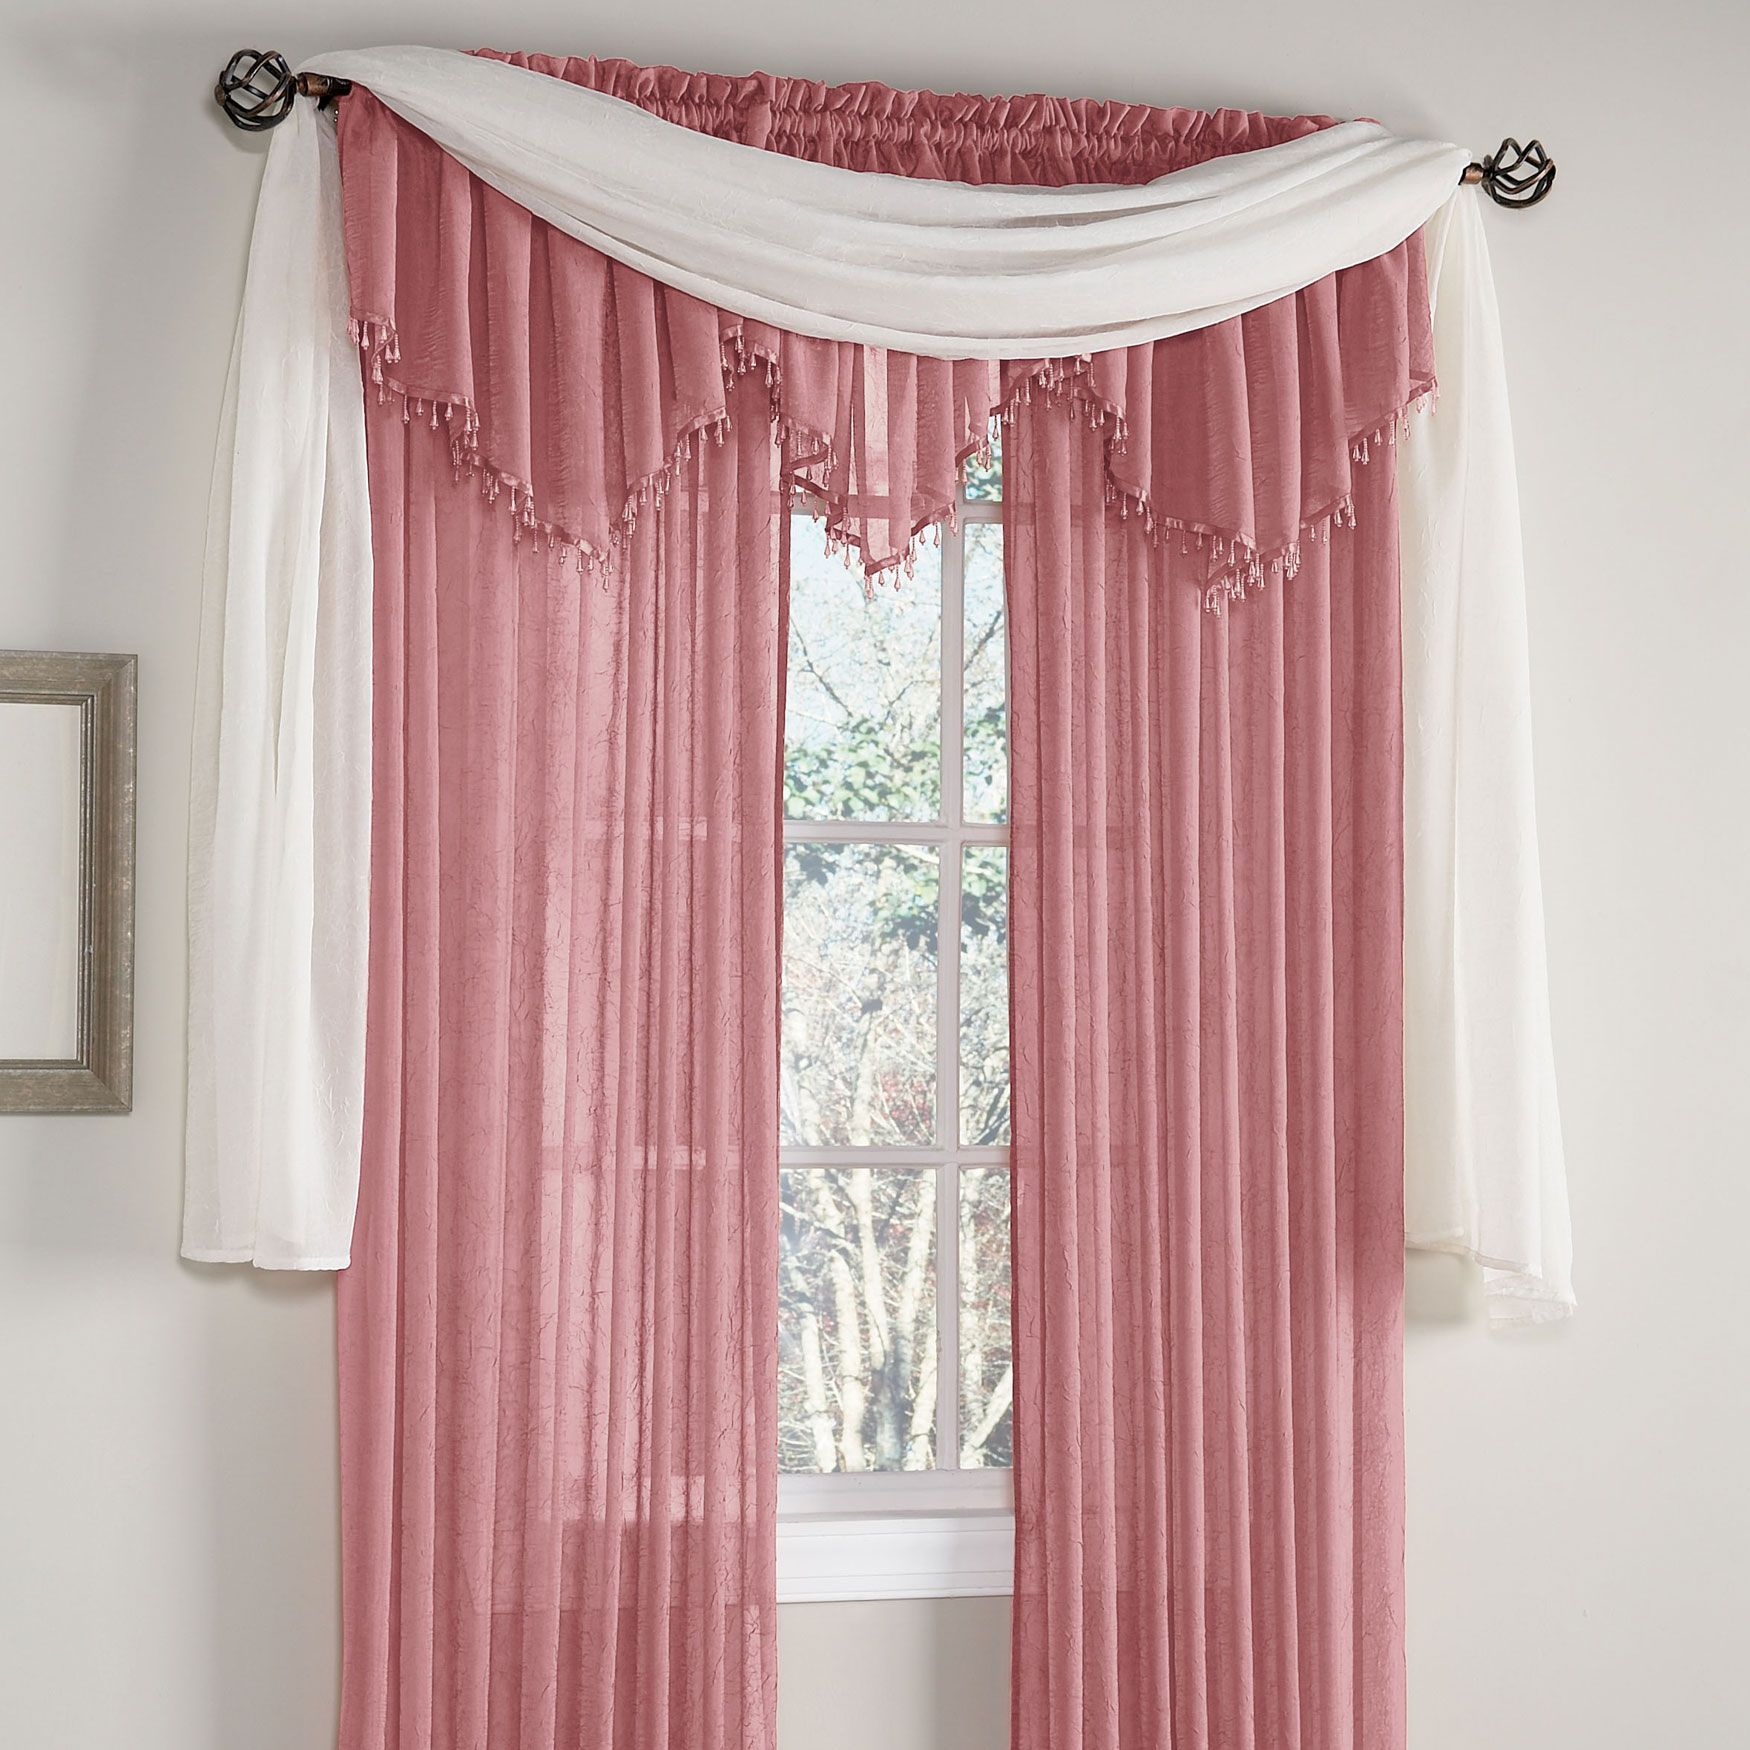 Crushed Voile Rod Pocket Panel Scarf Valance Curtains